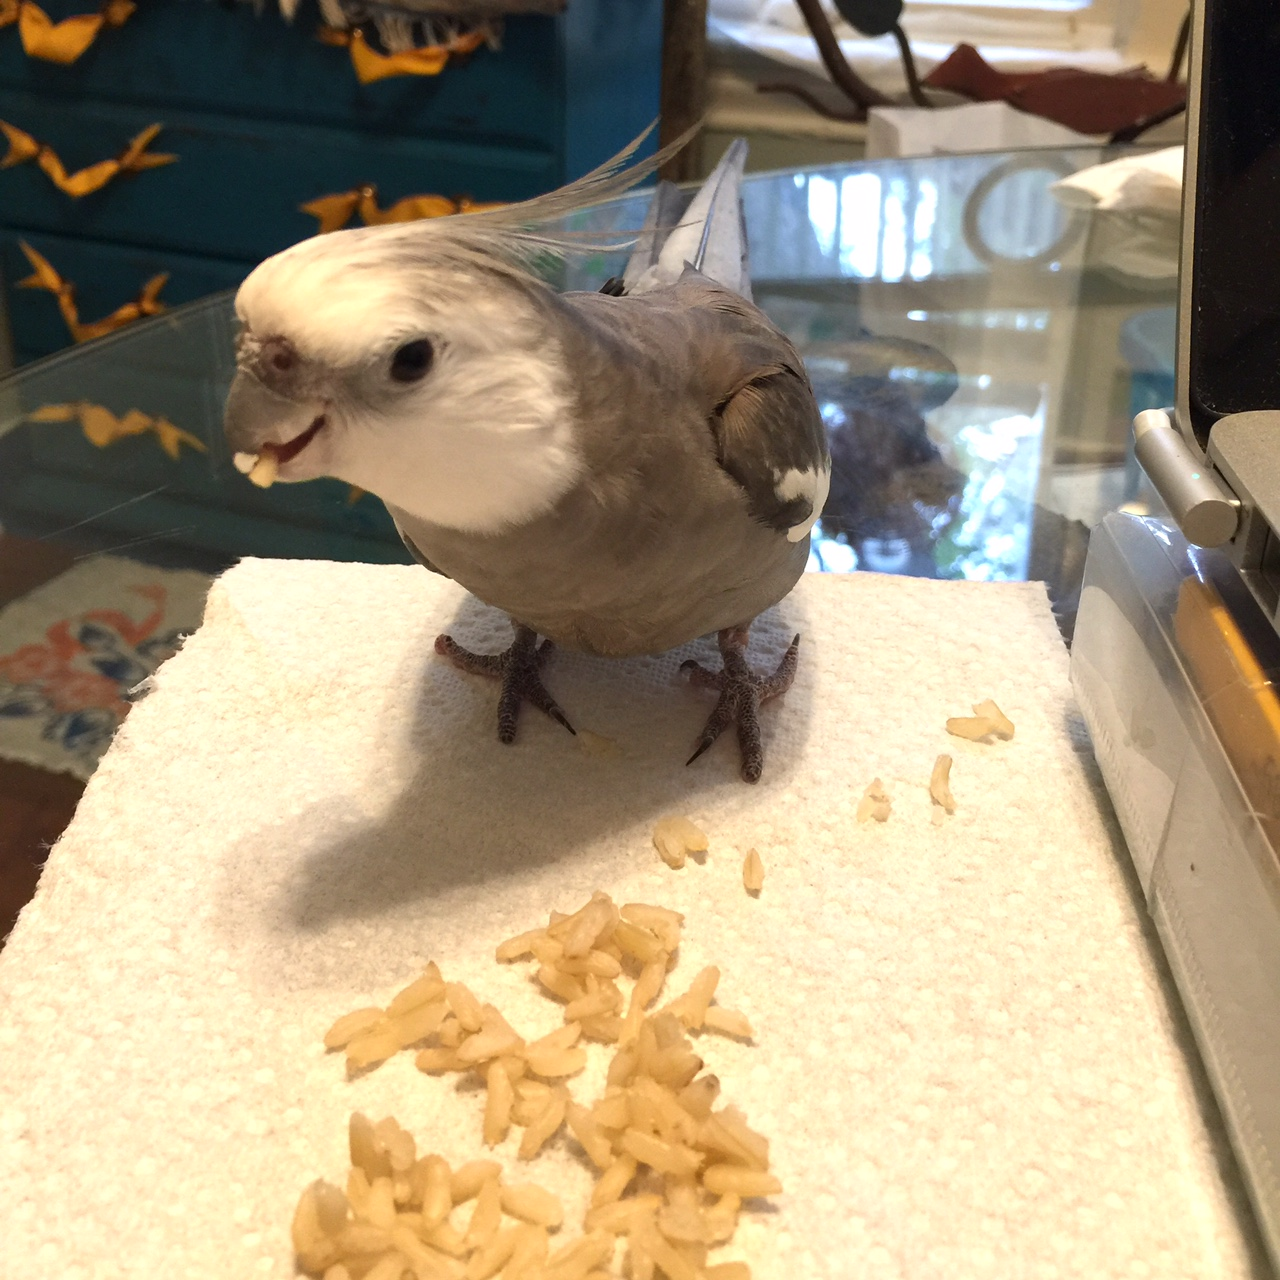 My mommy loves me so much - every time I fling another rice kernel she goes running to scrape up off whatever it stuck to, no matter how far away it is!